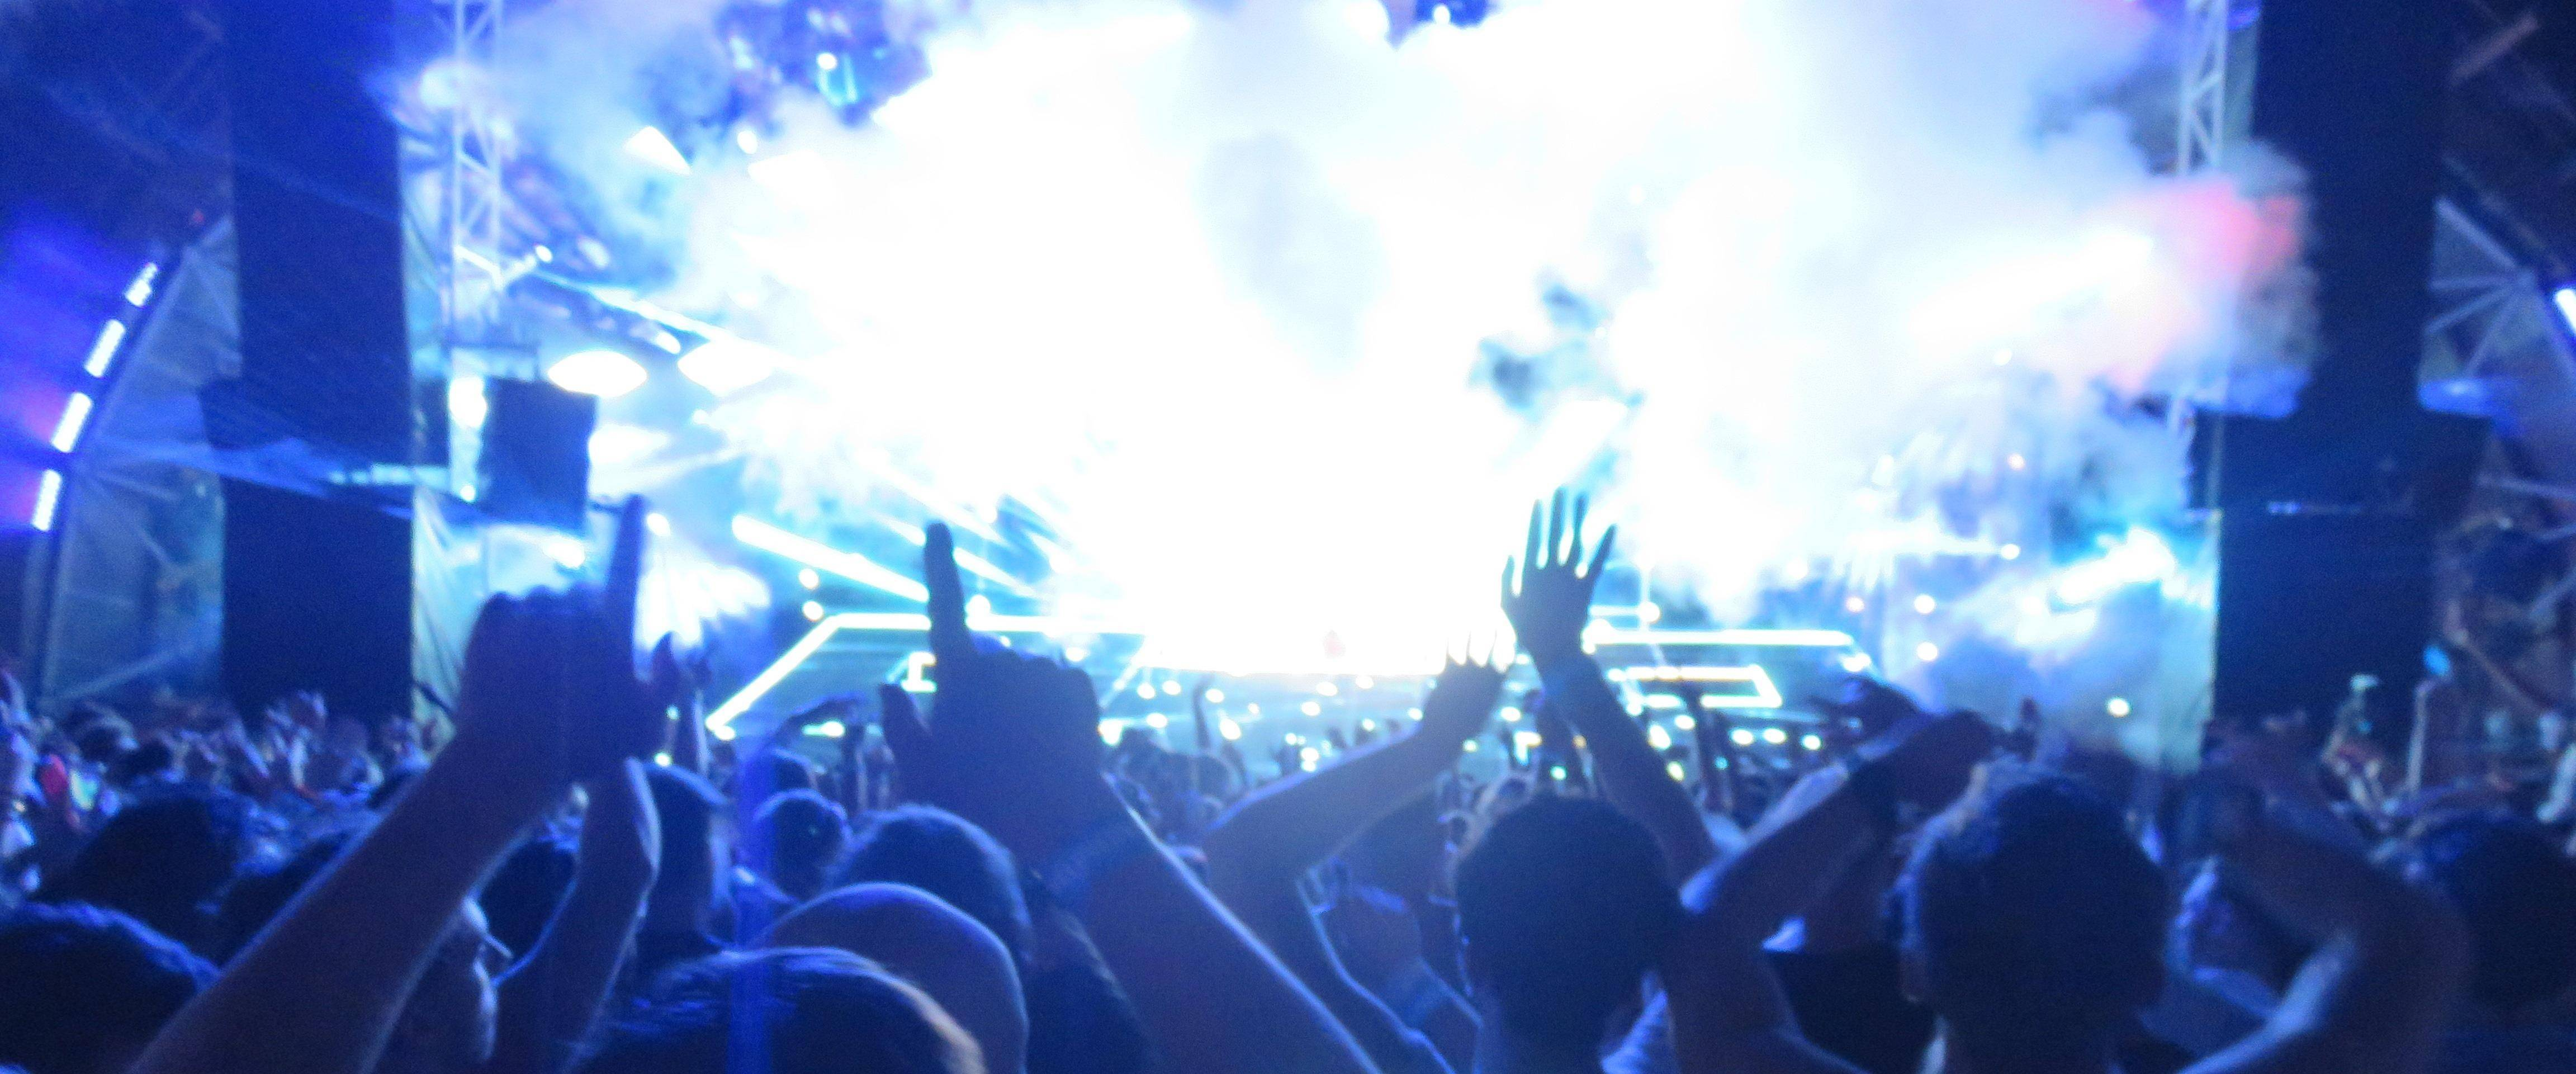 A loud concert might end up causing hearing problems.